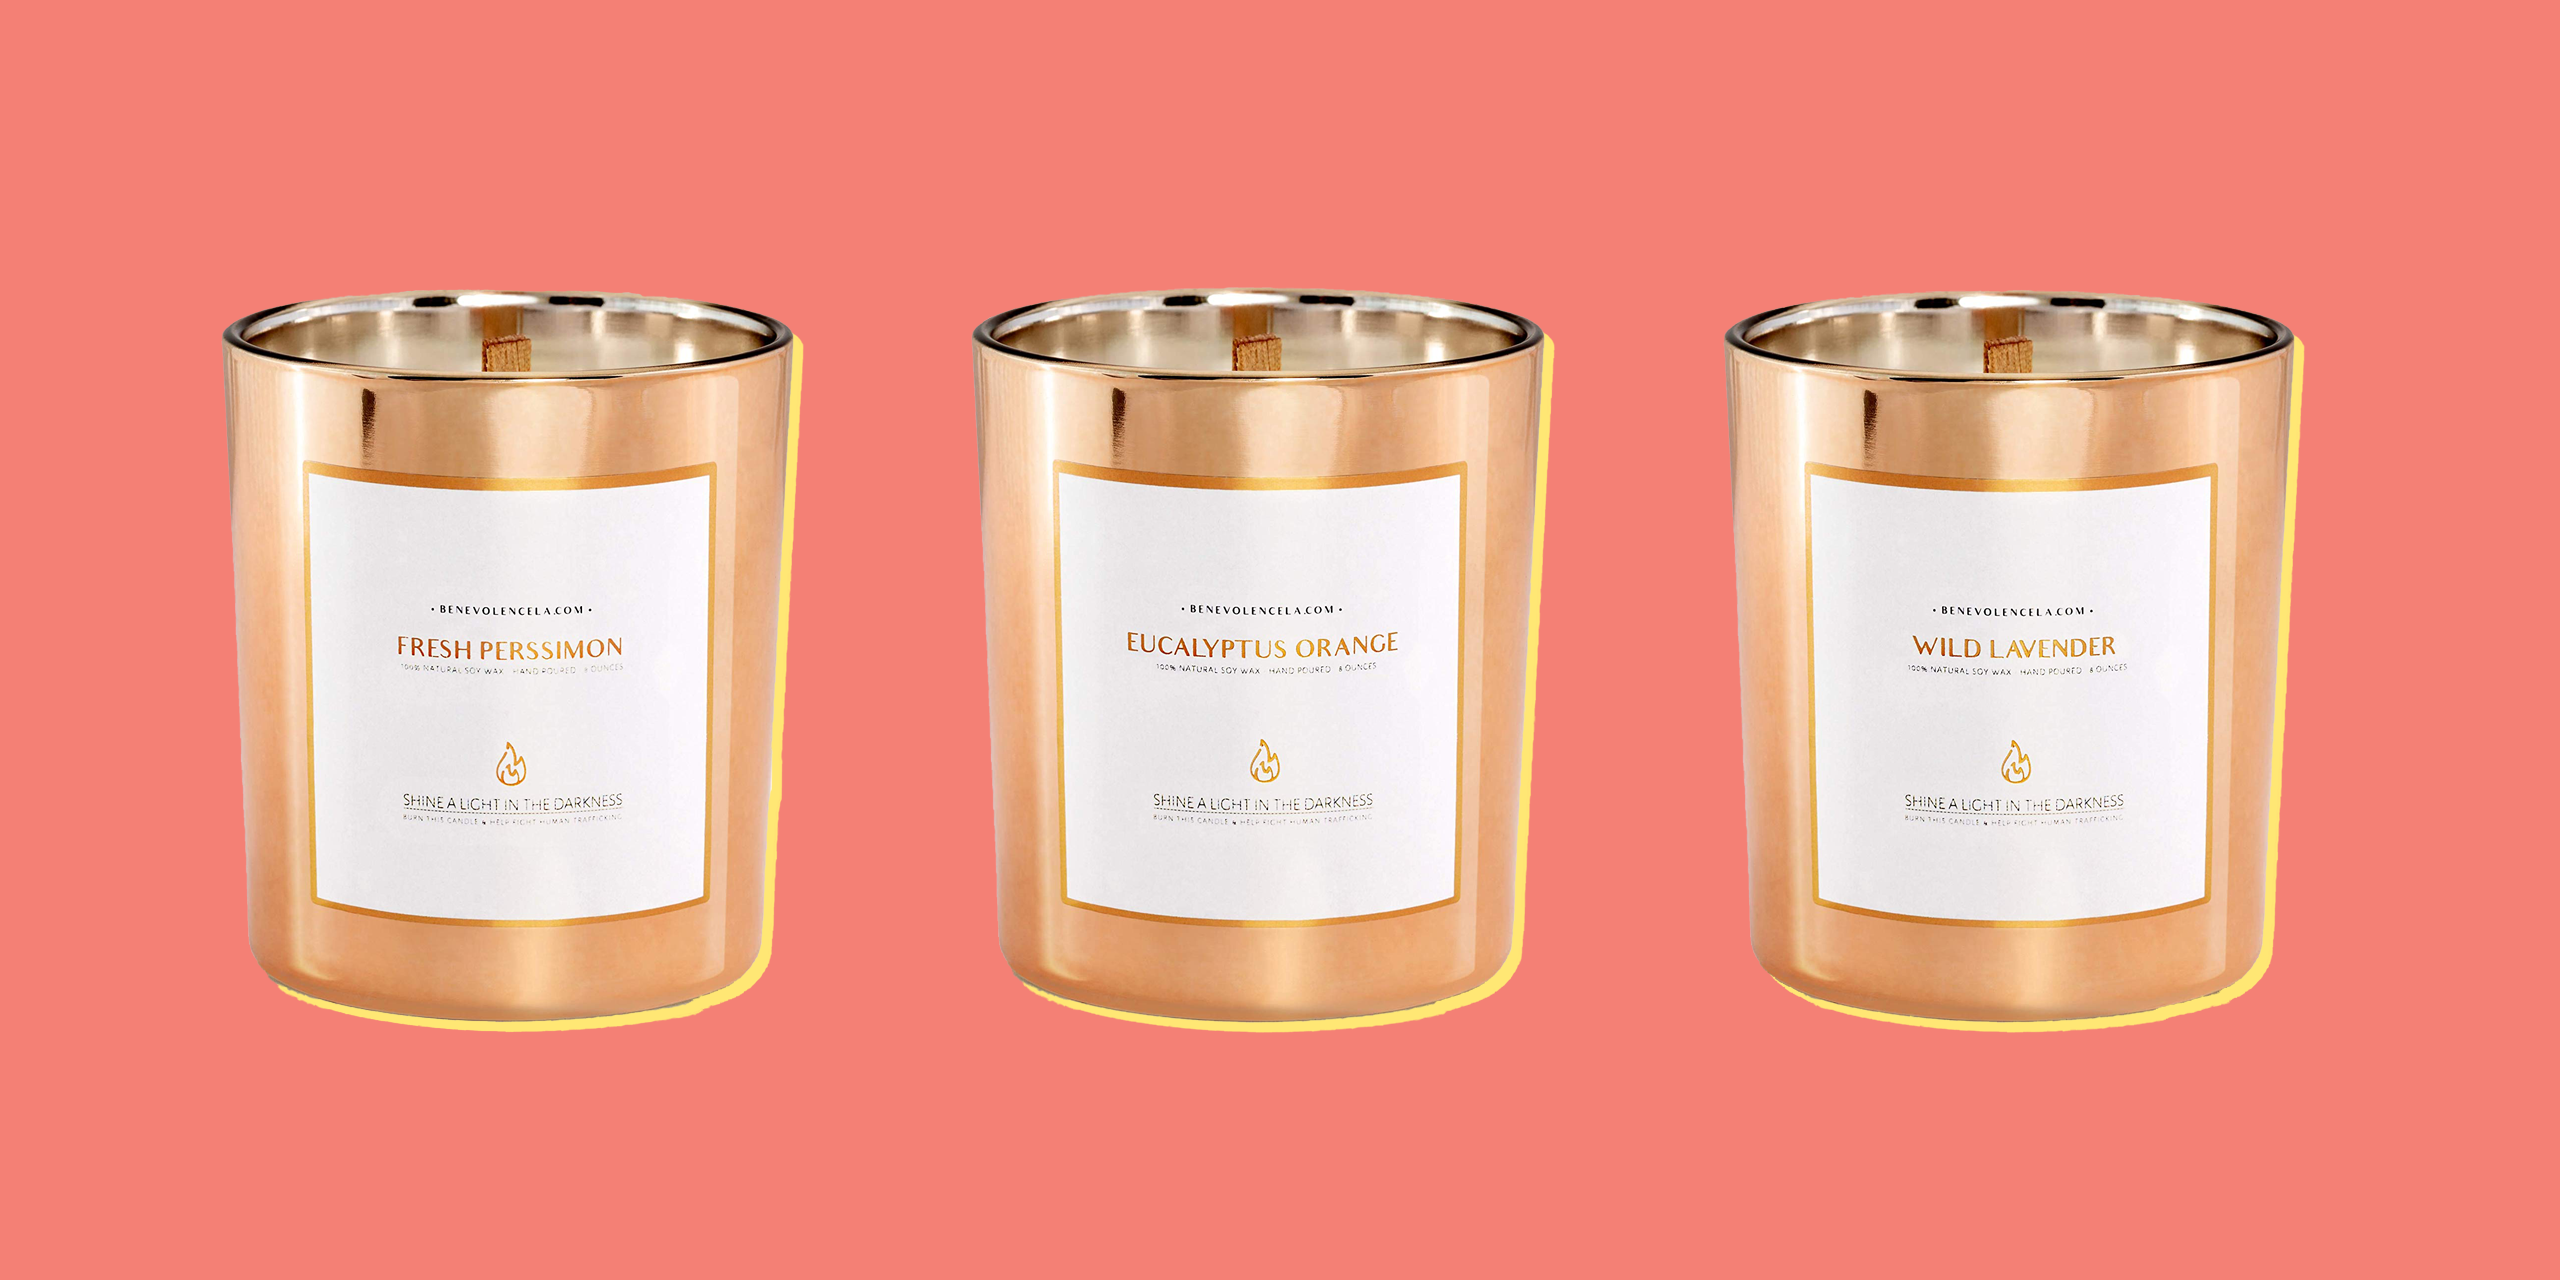 Amazon Shoppers Are Obsessed With This Aromatherapy Candle—And It's 40% Off Today